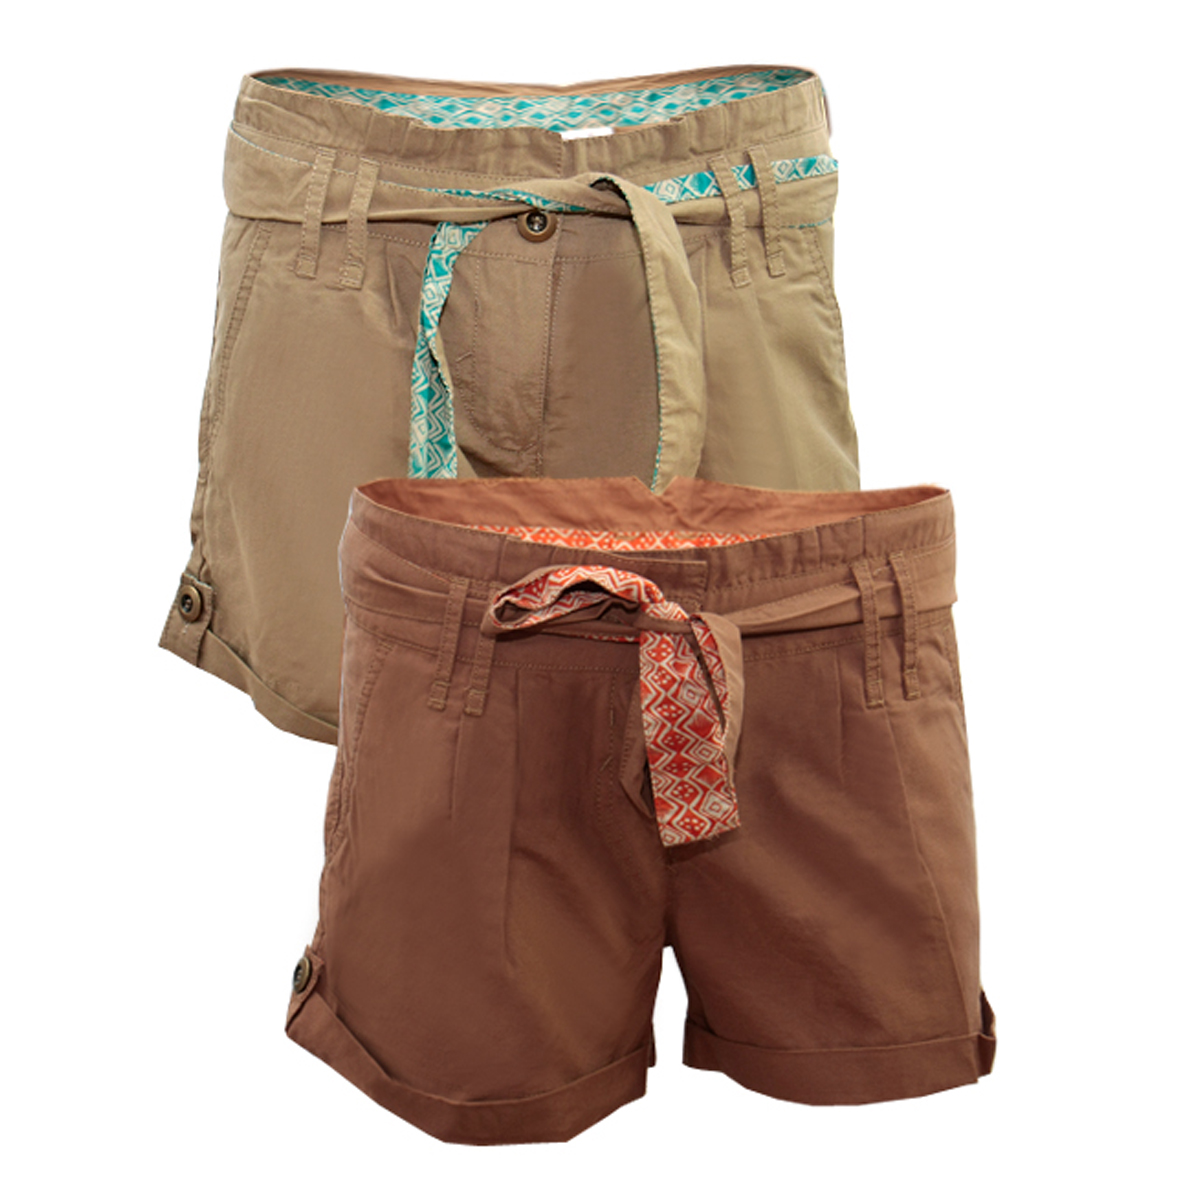 Free shipping BOTH ways on Shorts, Brown, Women, from our vast selection of styles. Fast delivery, and 24/7/ real-person service with a smile. Click or call